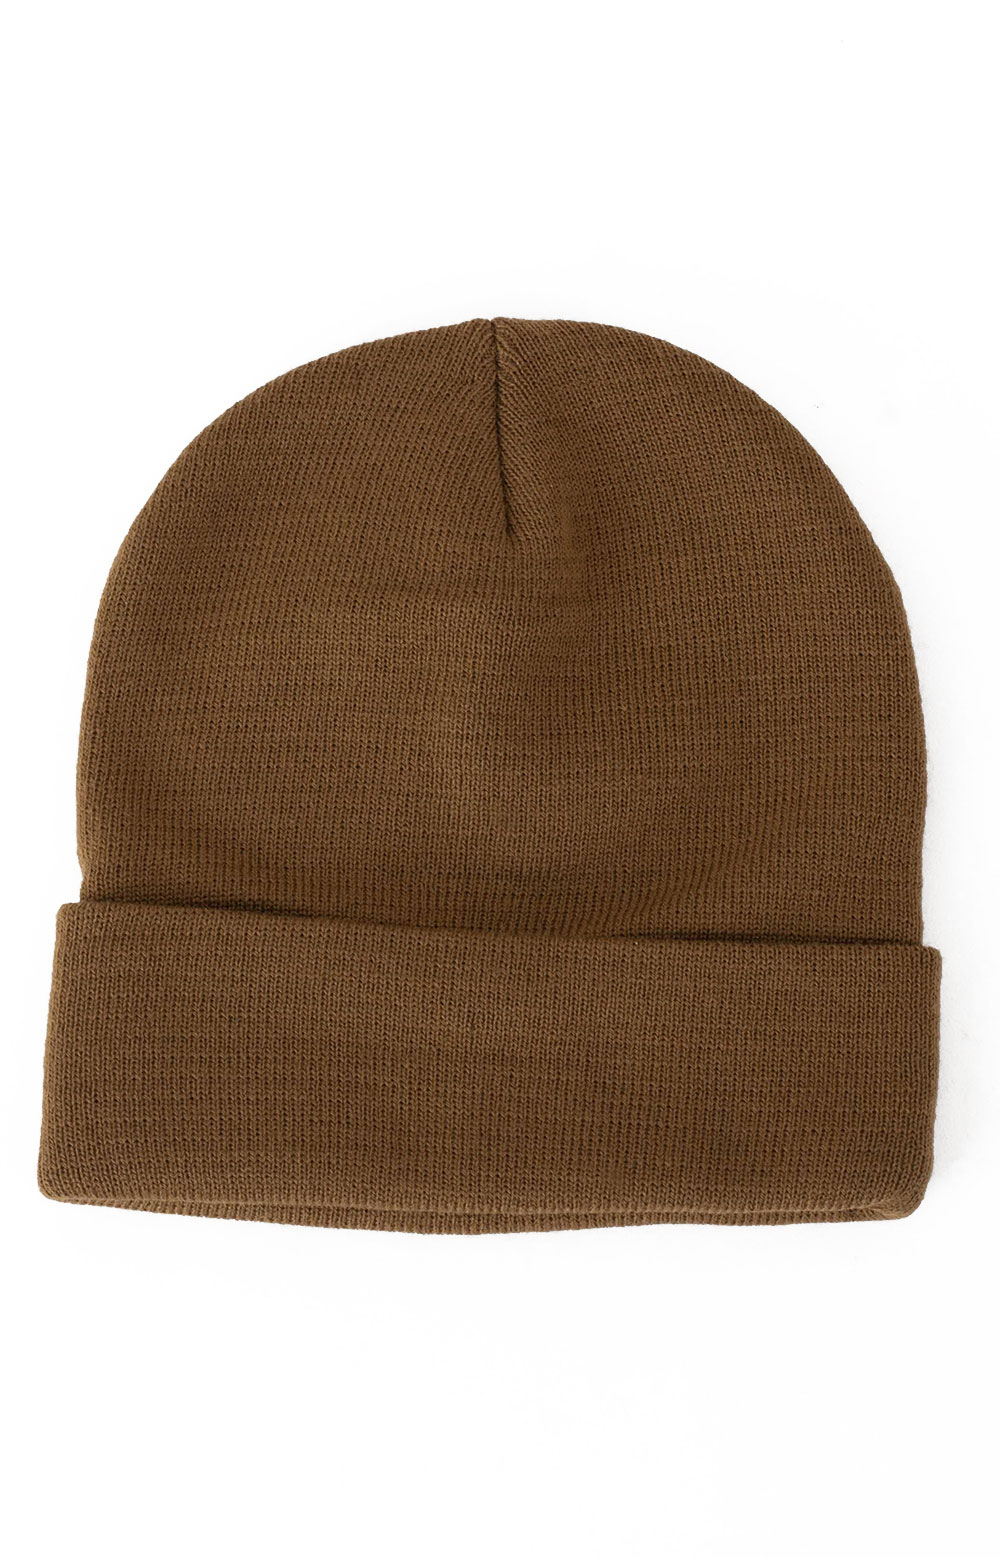 (5786) Rothco Deluxe Fine Knit Watch Cap - Coyote Brown